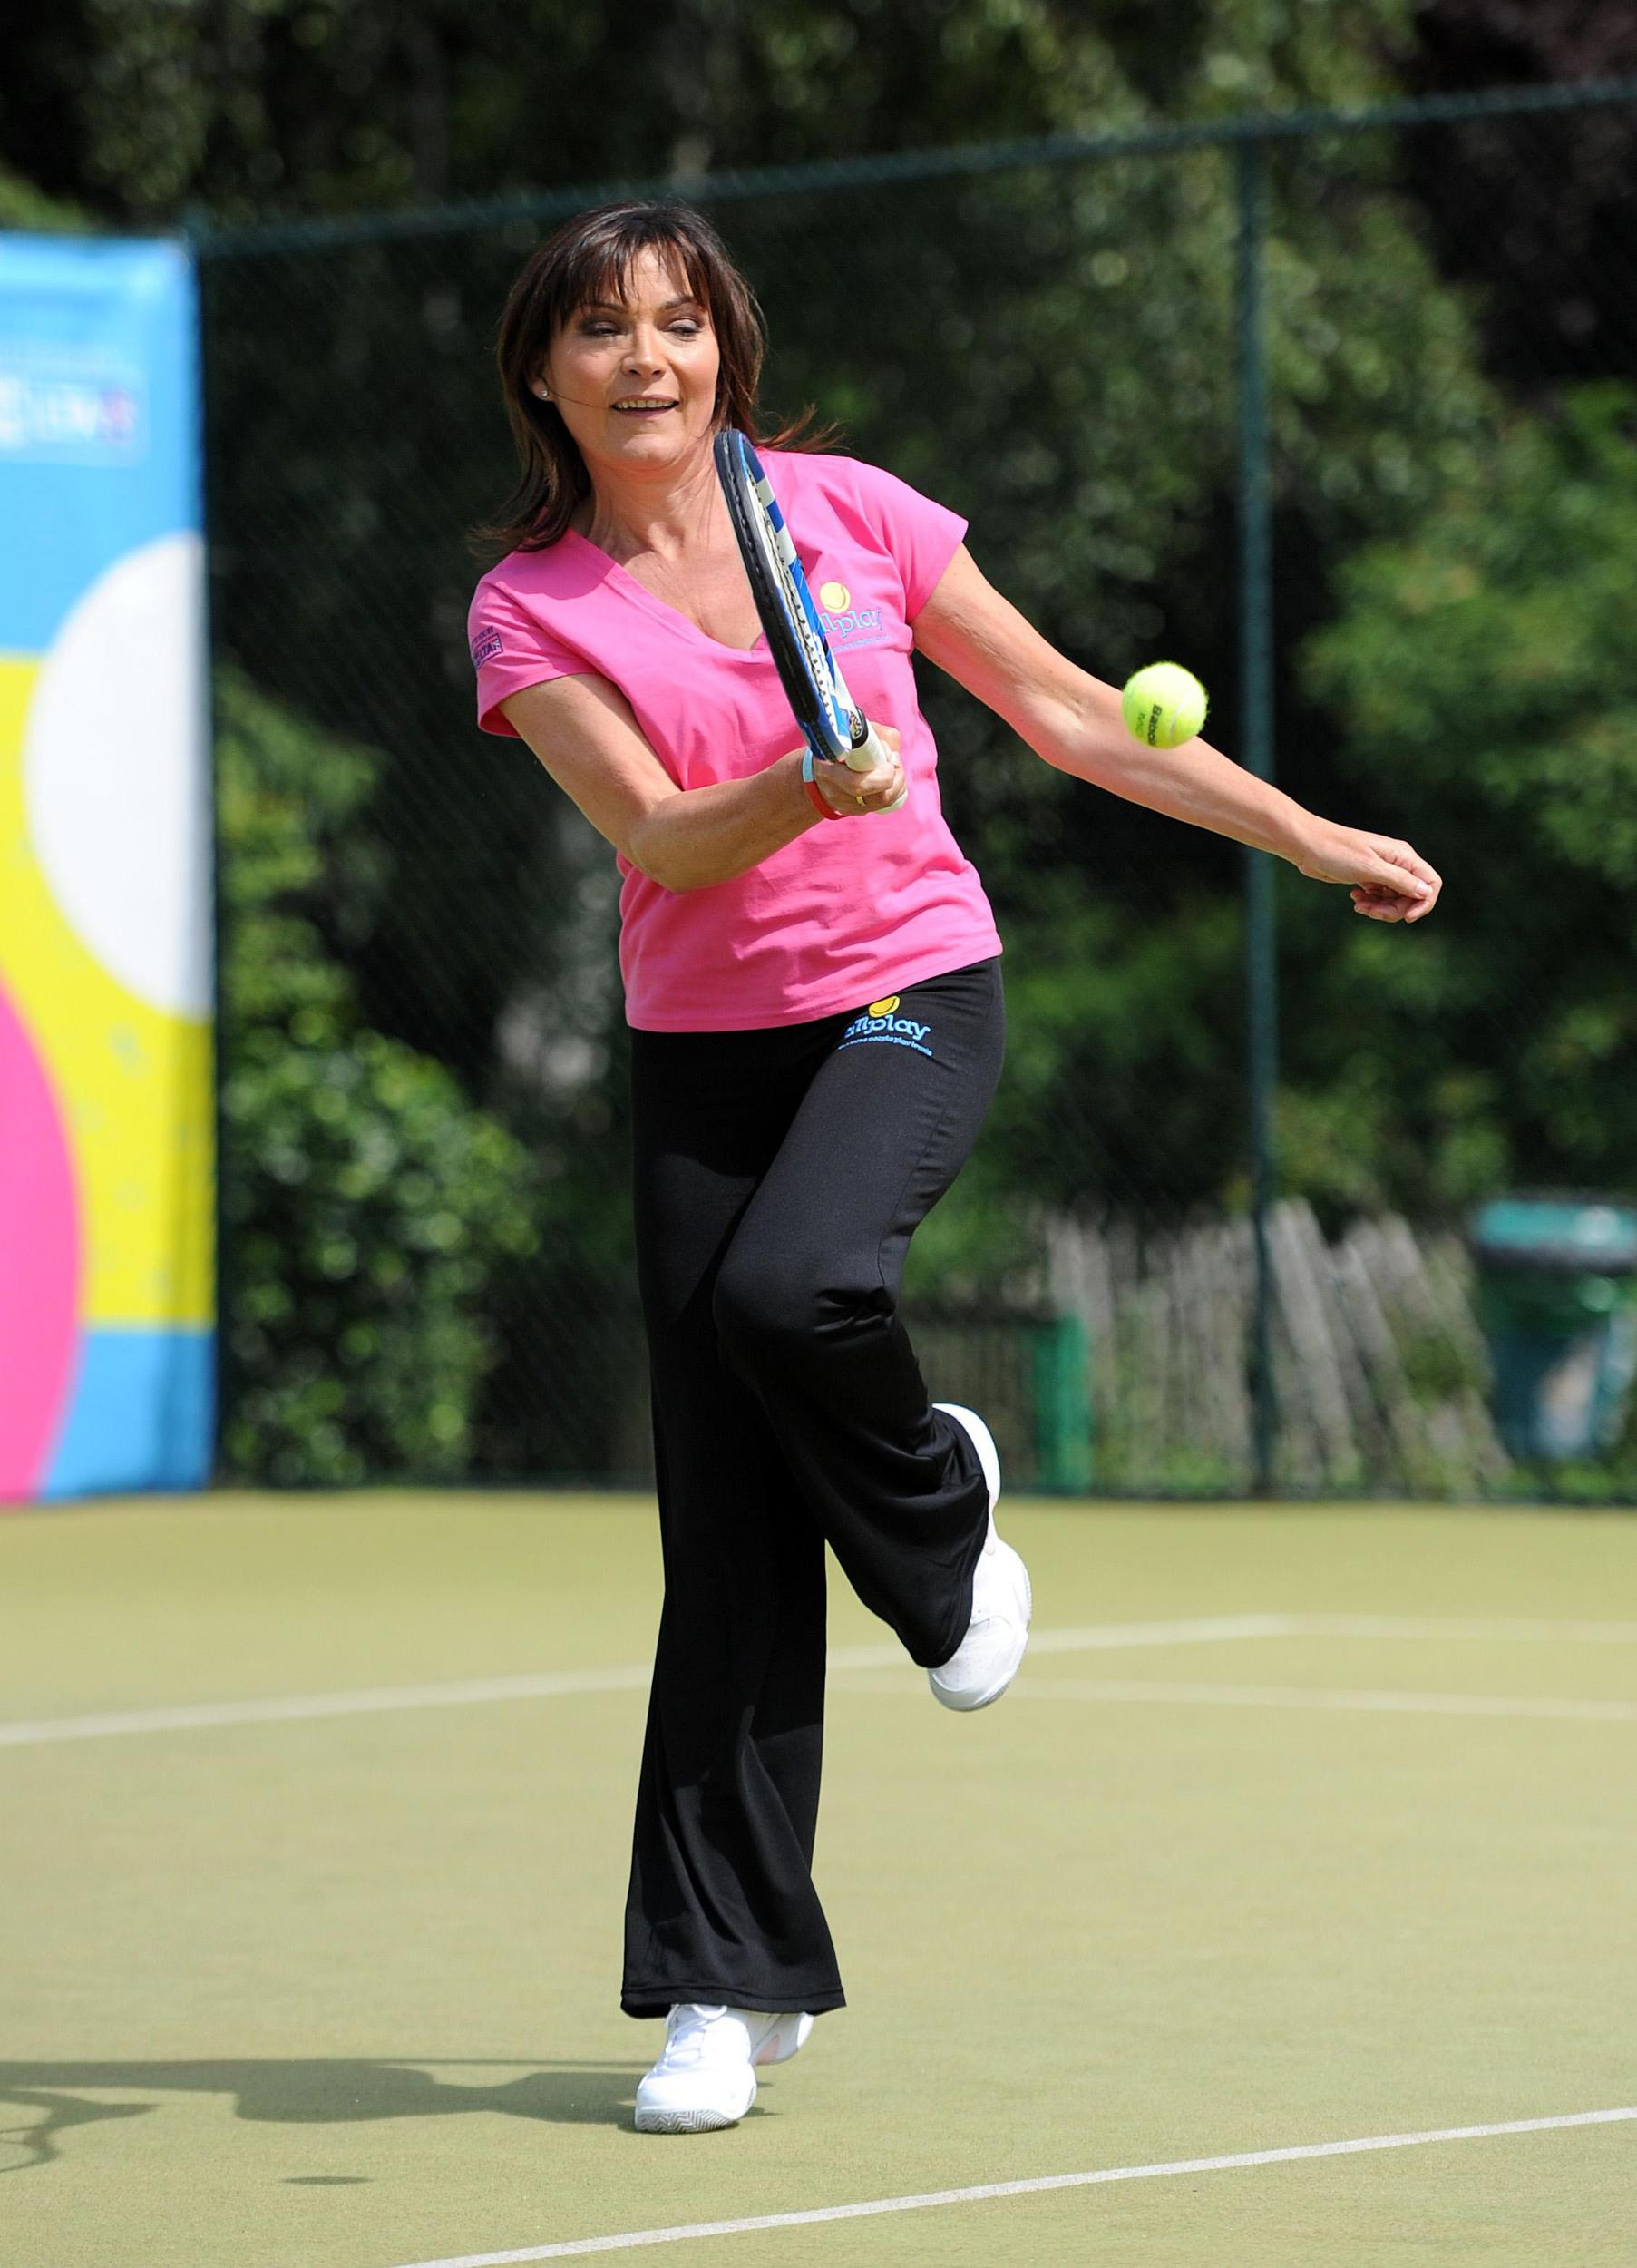 Lorraine Kelly plays tennis during the Lawn Tennis Association's campagne All Play, at Wimbledon Park Tennis Courts, Wimbledon.